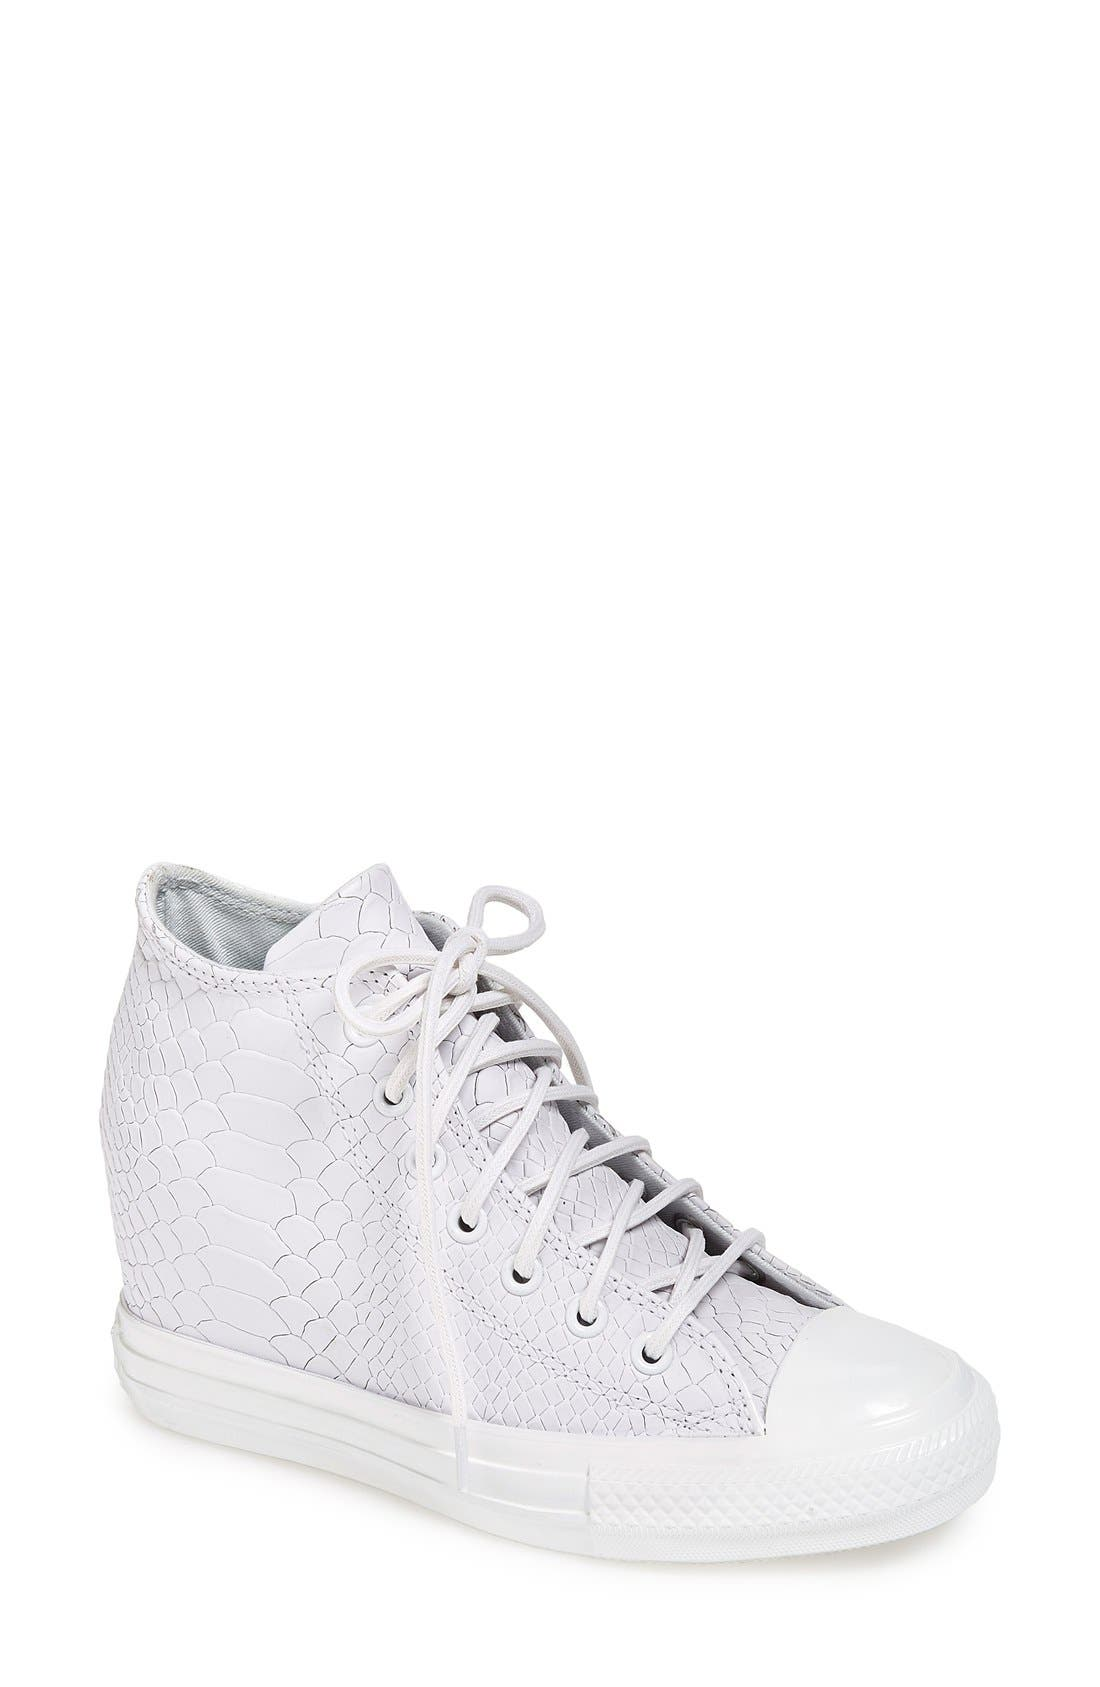 Alternate Image 1 Selected - Converse Chuck Taylor® All Star® 'Embossed Reptile' Wedge Sneaker (Women)